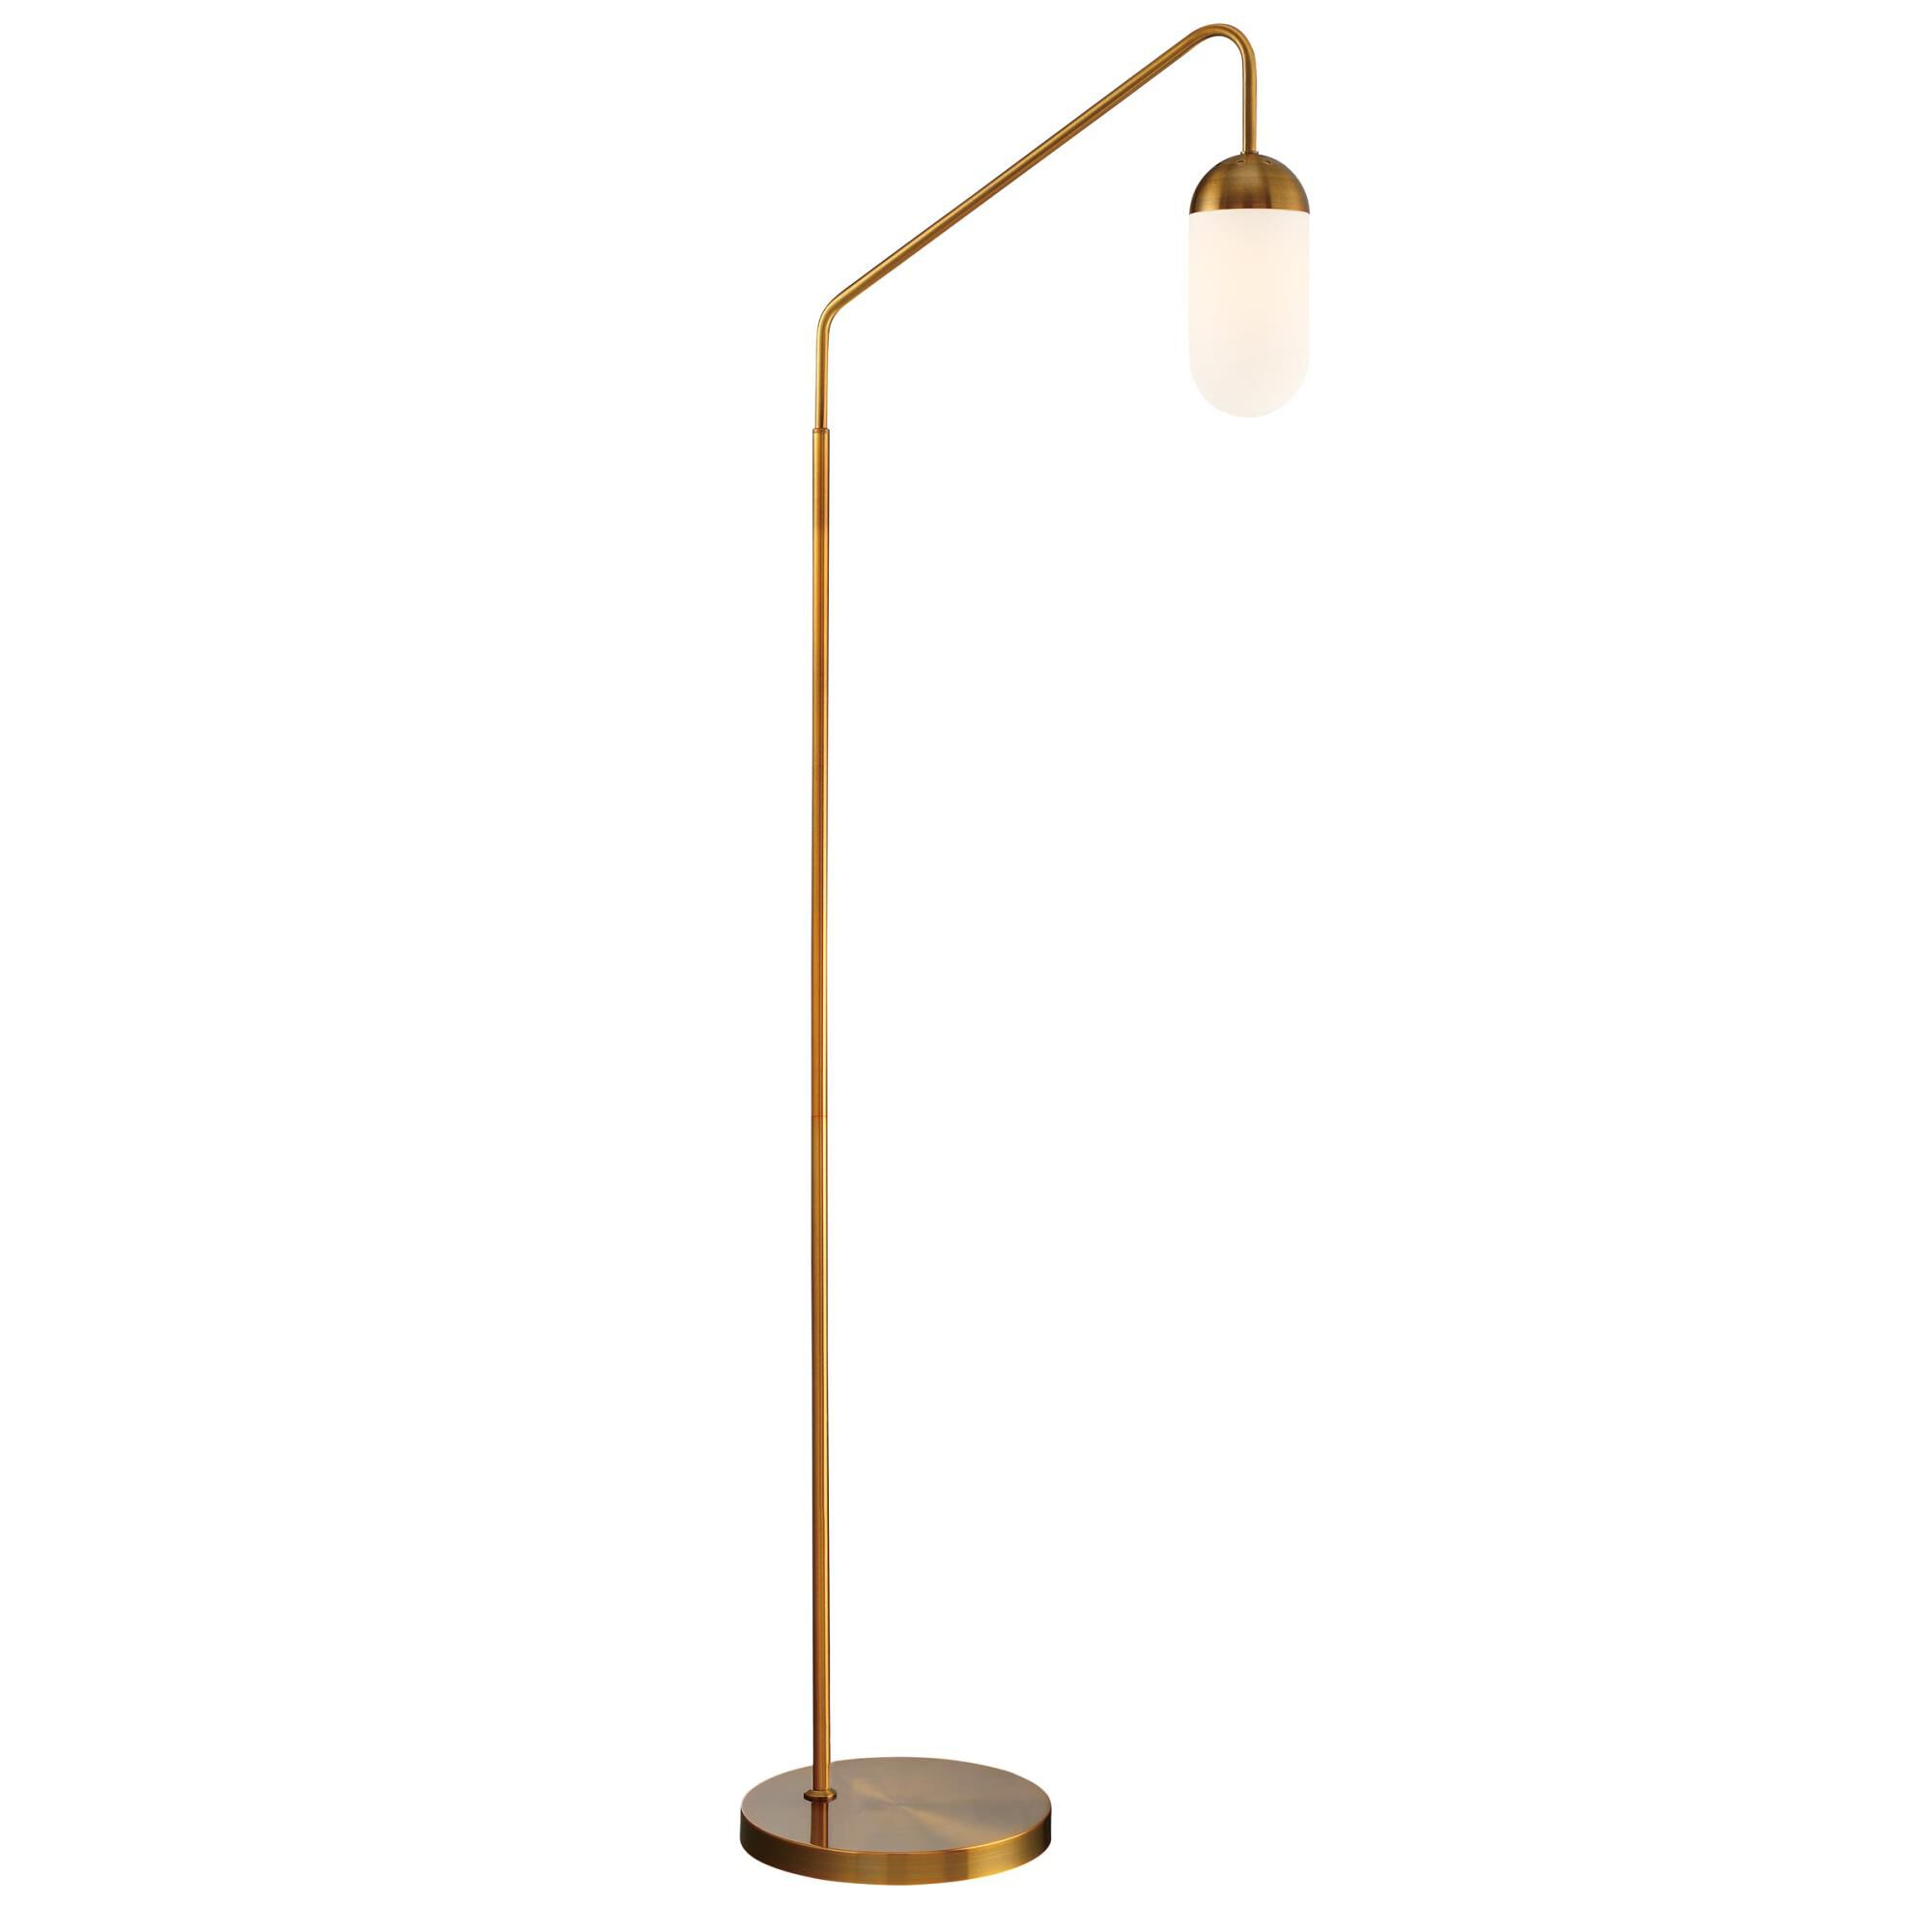 Tall Lamp for Living Room 61 Inches